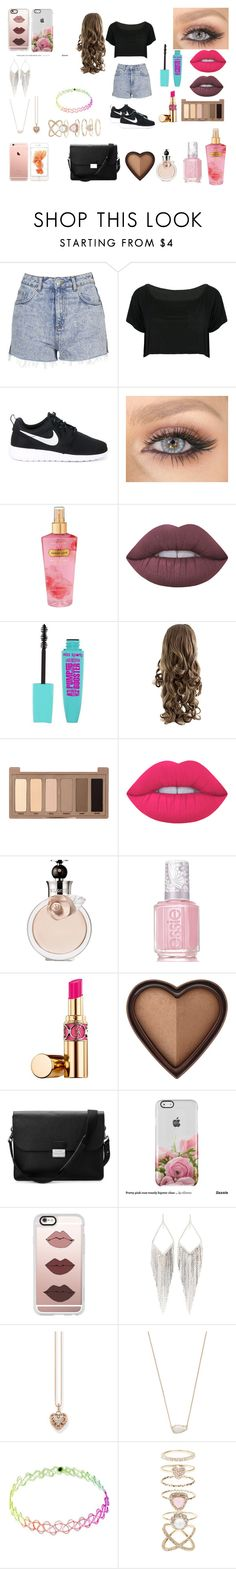 """""""Summer"""" by xxecmxx on Polyvore featuring mode, Topshop, WithChic, NIKE, Victoria's Secret, Lime Crime, Urban Decay, Valentino, Essie en Yves Saint Laurent"""